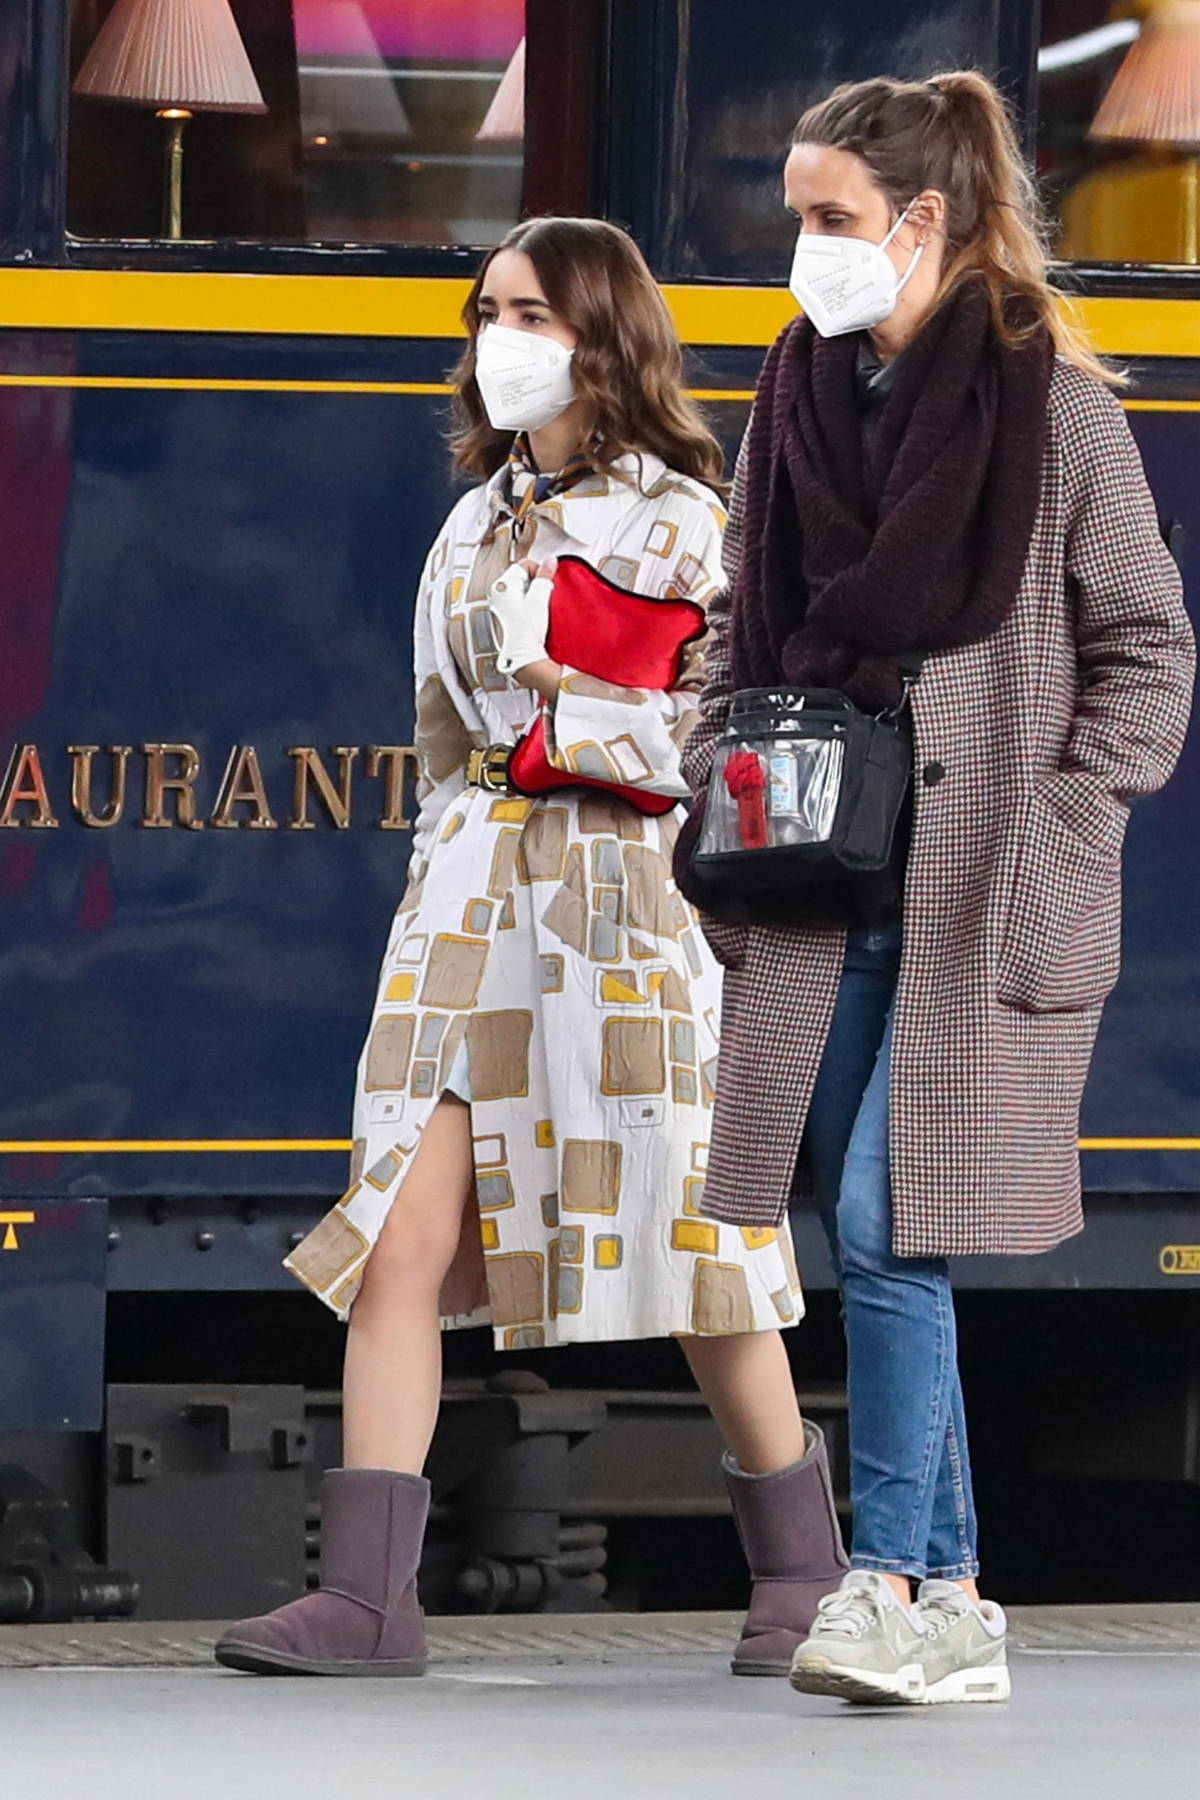 Lily Collins seen filming for 'Emily in Paris' at at Gare de l'Est train station in Paris, France